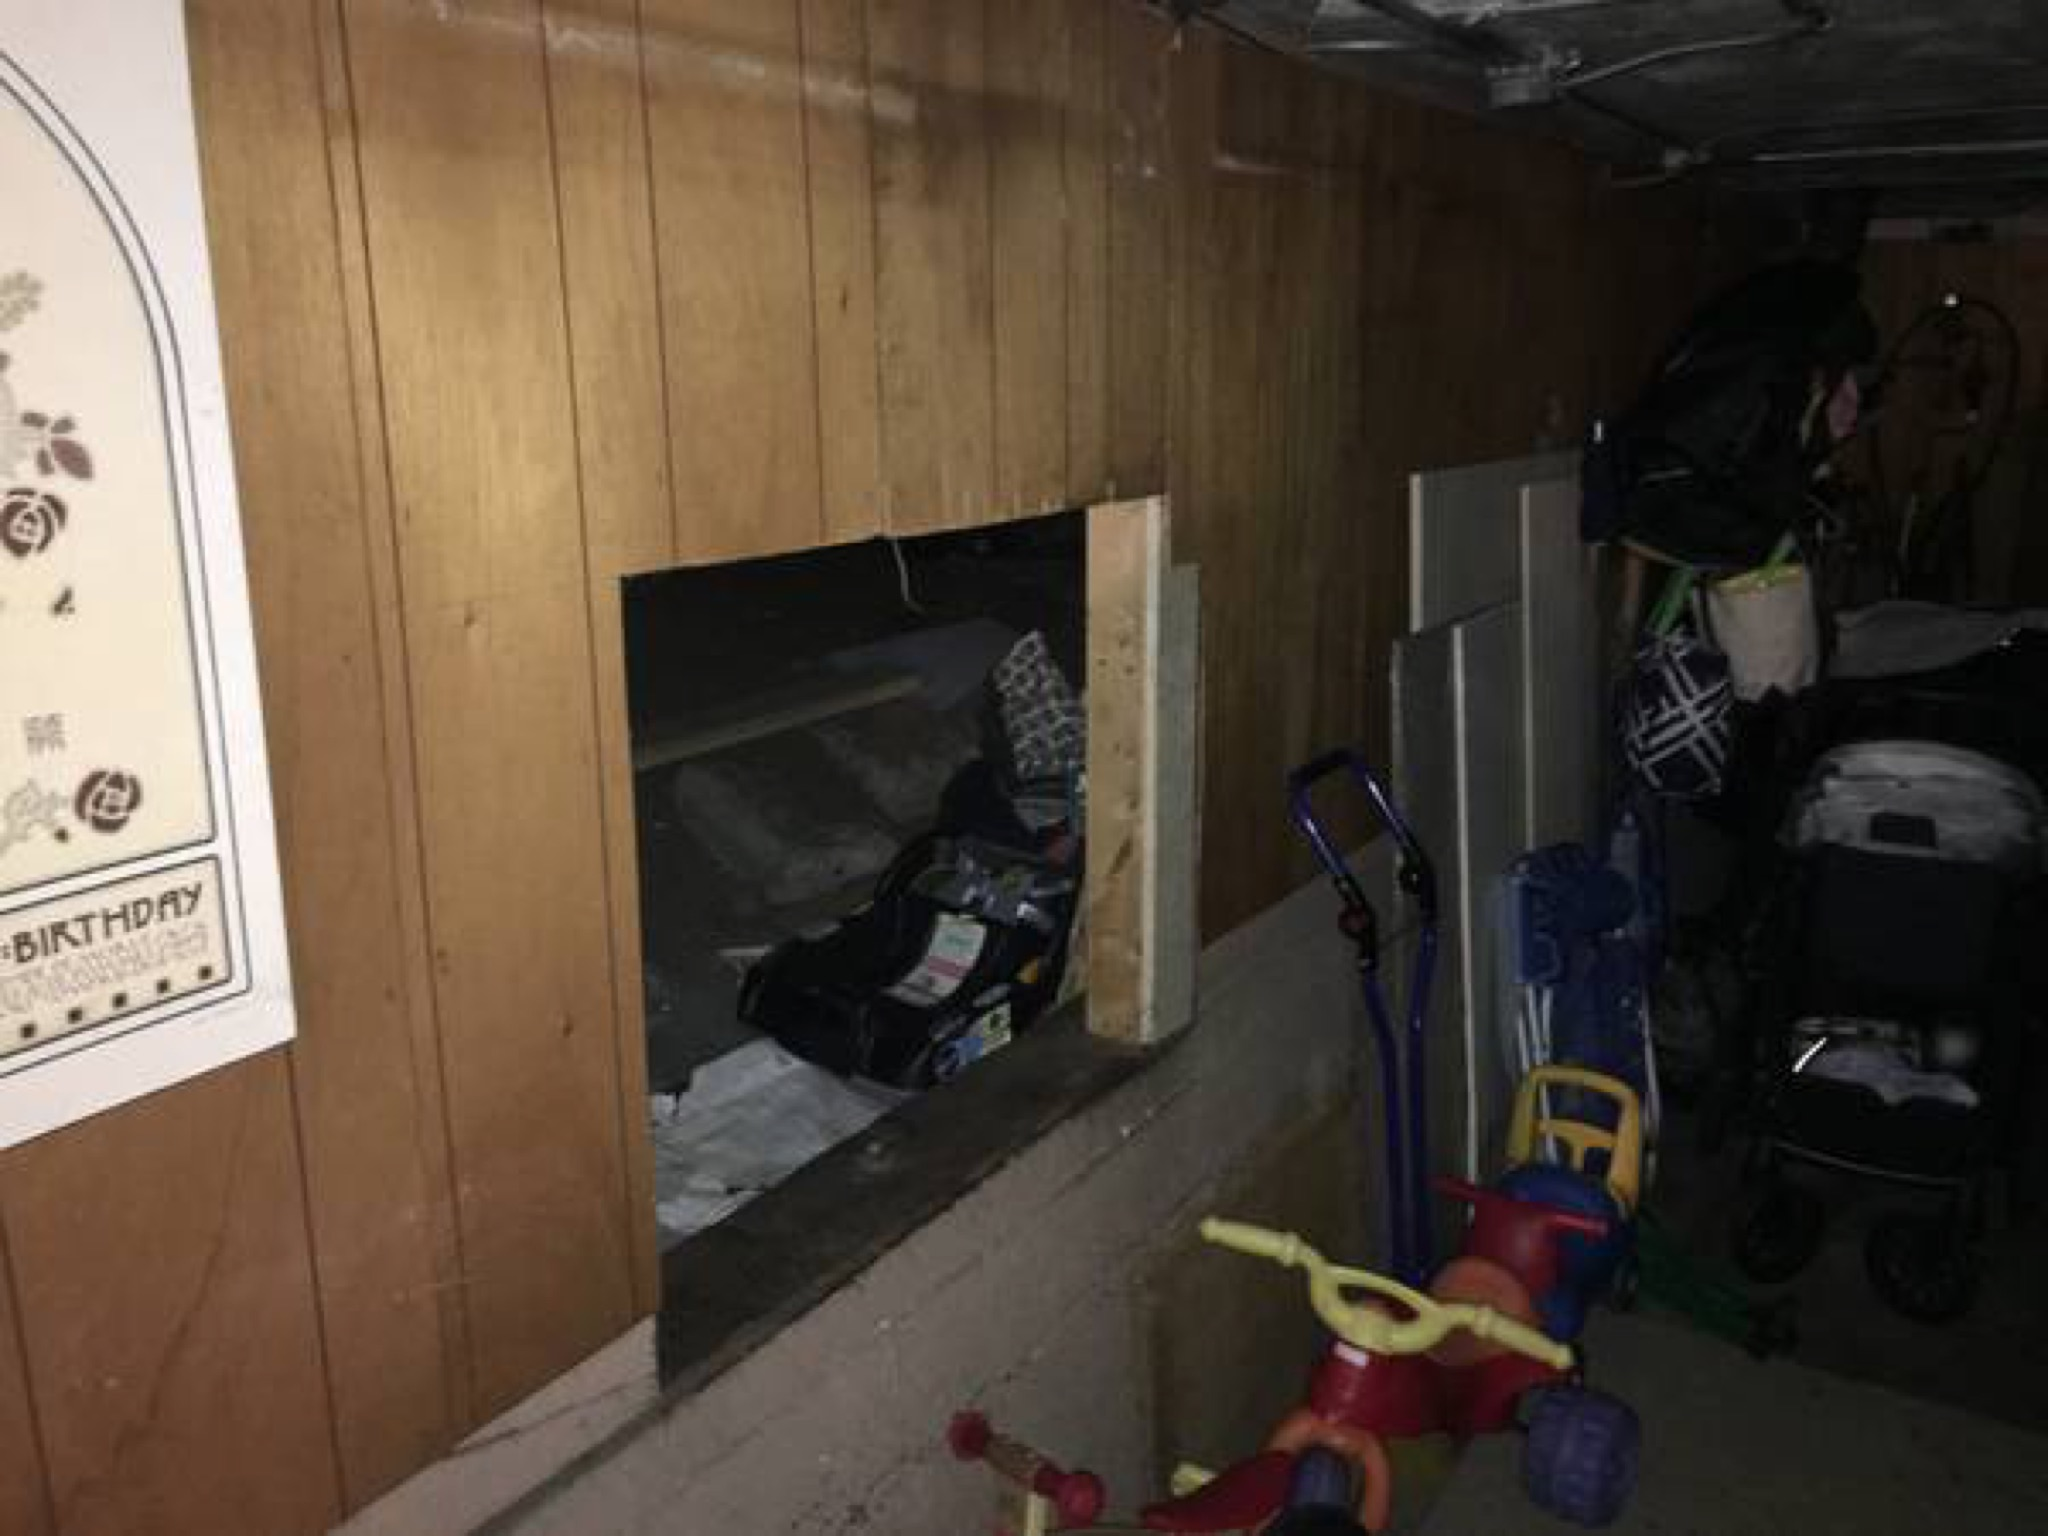 Garage For Rent On Craigslist Pacific Heights Crawl Space For 500 A Month Sums Up San